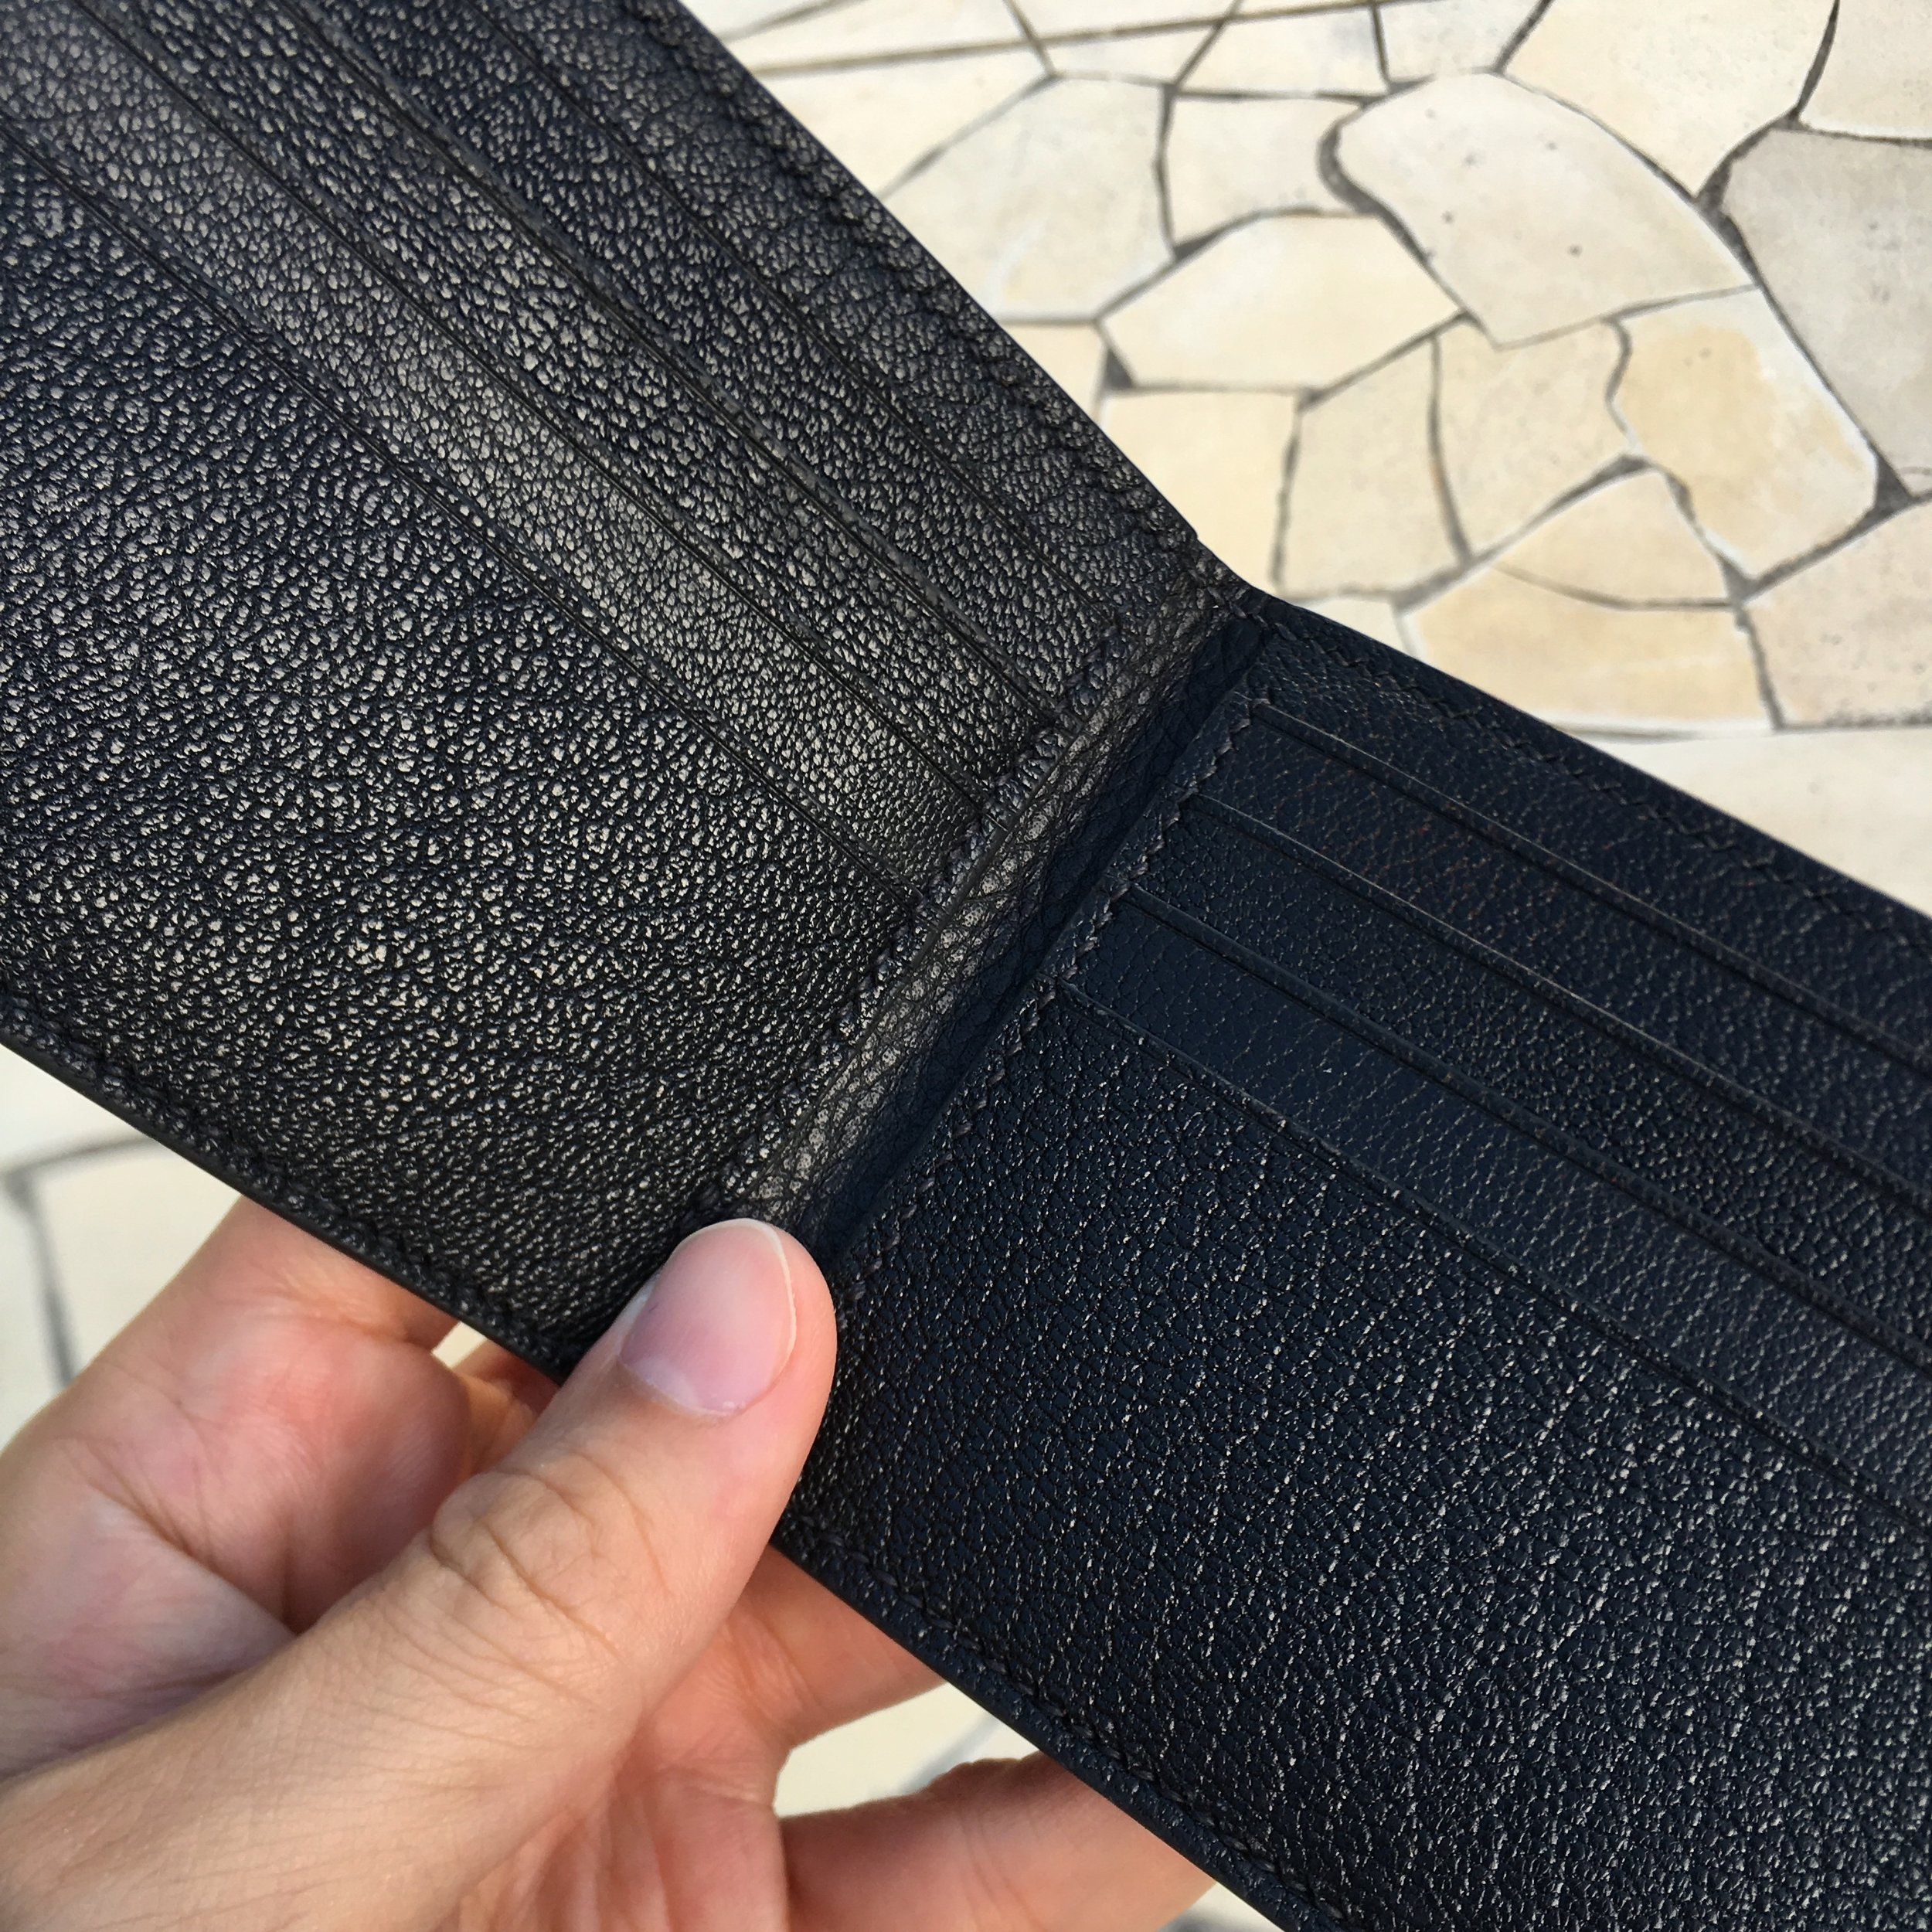 Bifold Wallet    8 card slot with 2 note compartment plus a back pocket on back exterior